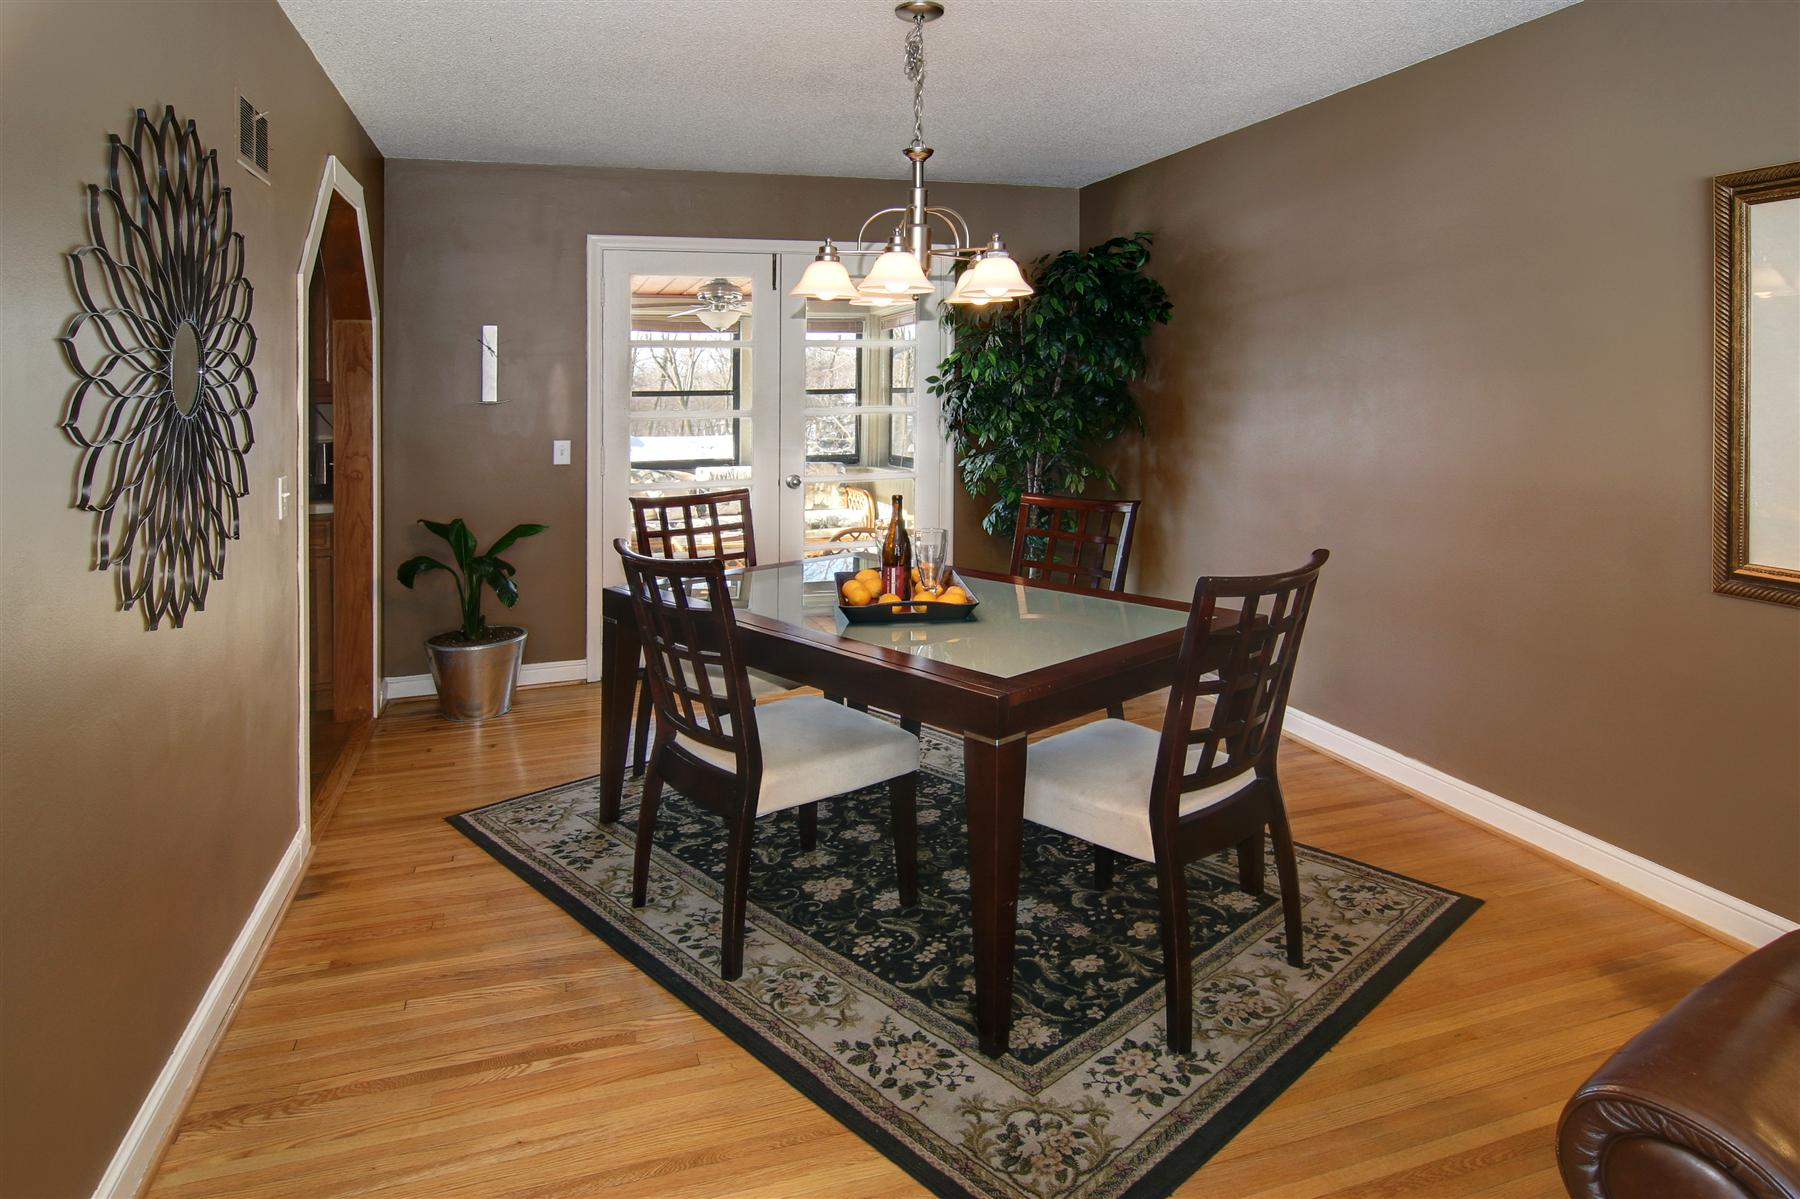 Combine Wooden Chairs and Dining Table with Old Fashioned Dining Room Rugs on Laminate Teak Flooring